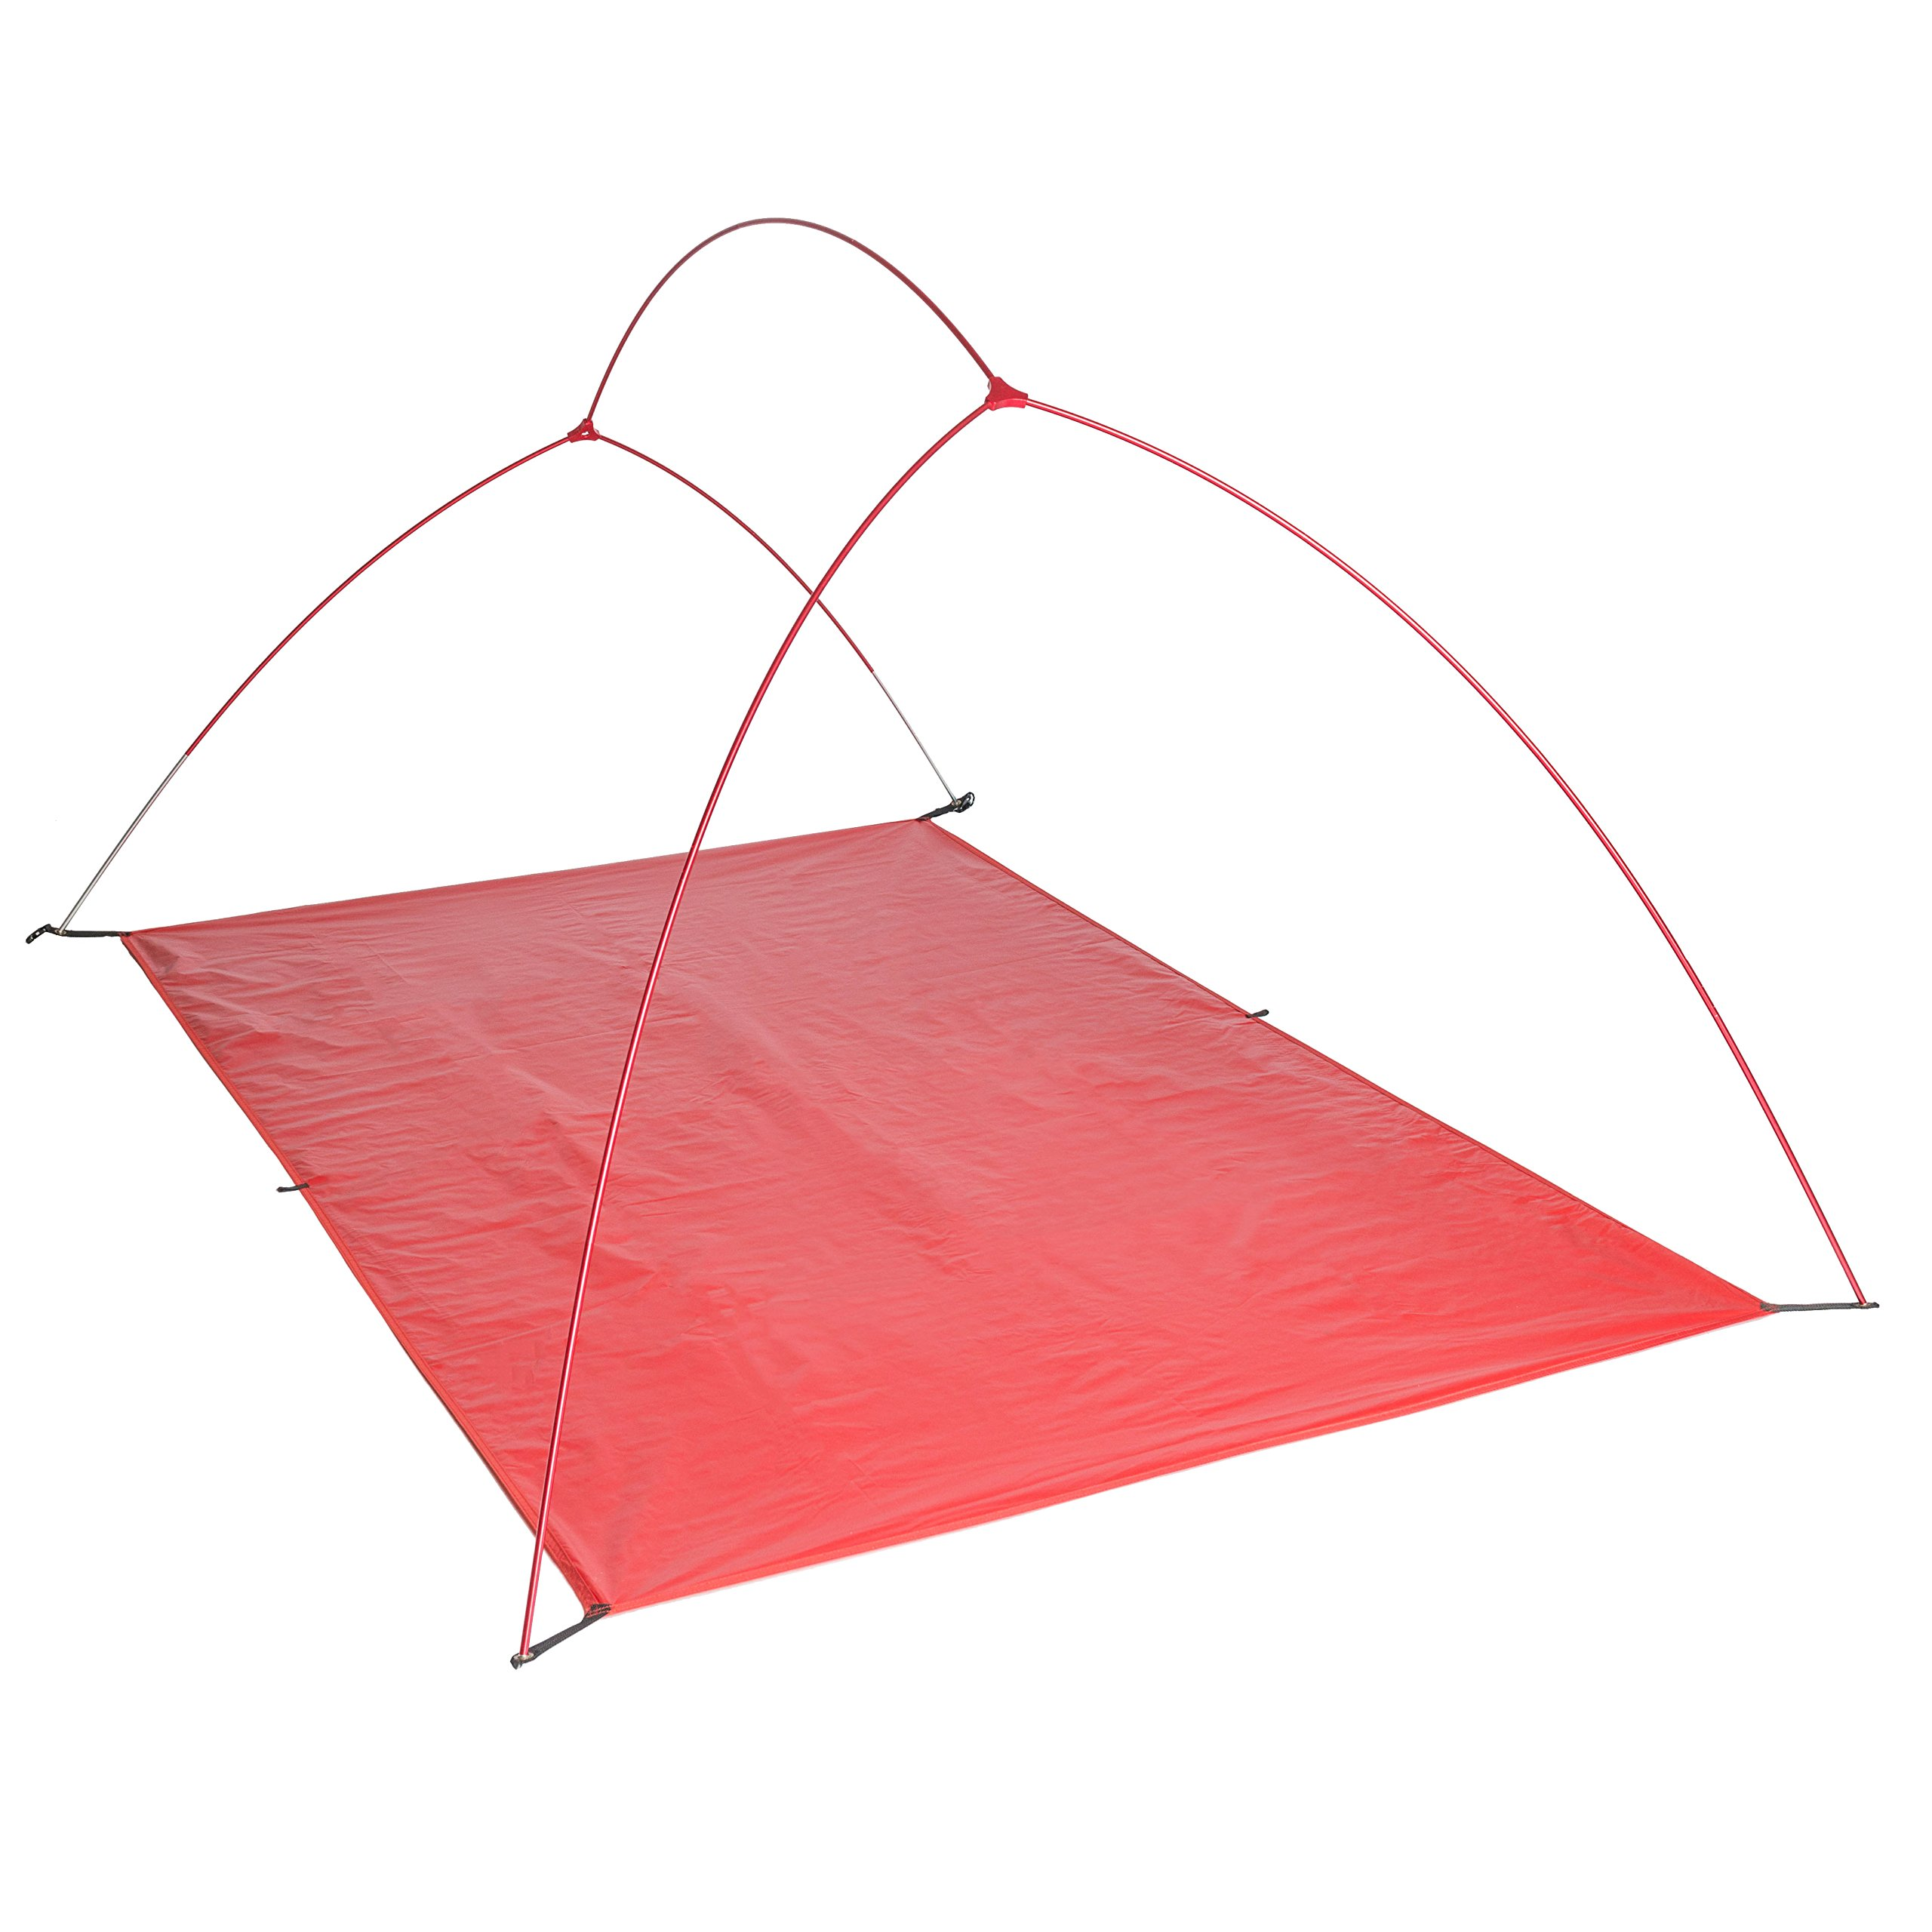 Bryce 2P Two Person Ultralight Tent and Footprint - Perfect for Backpacking, Kayaking, Camping and Bikepacking by Paria Outdoor Products (Image #7)